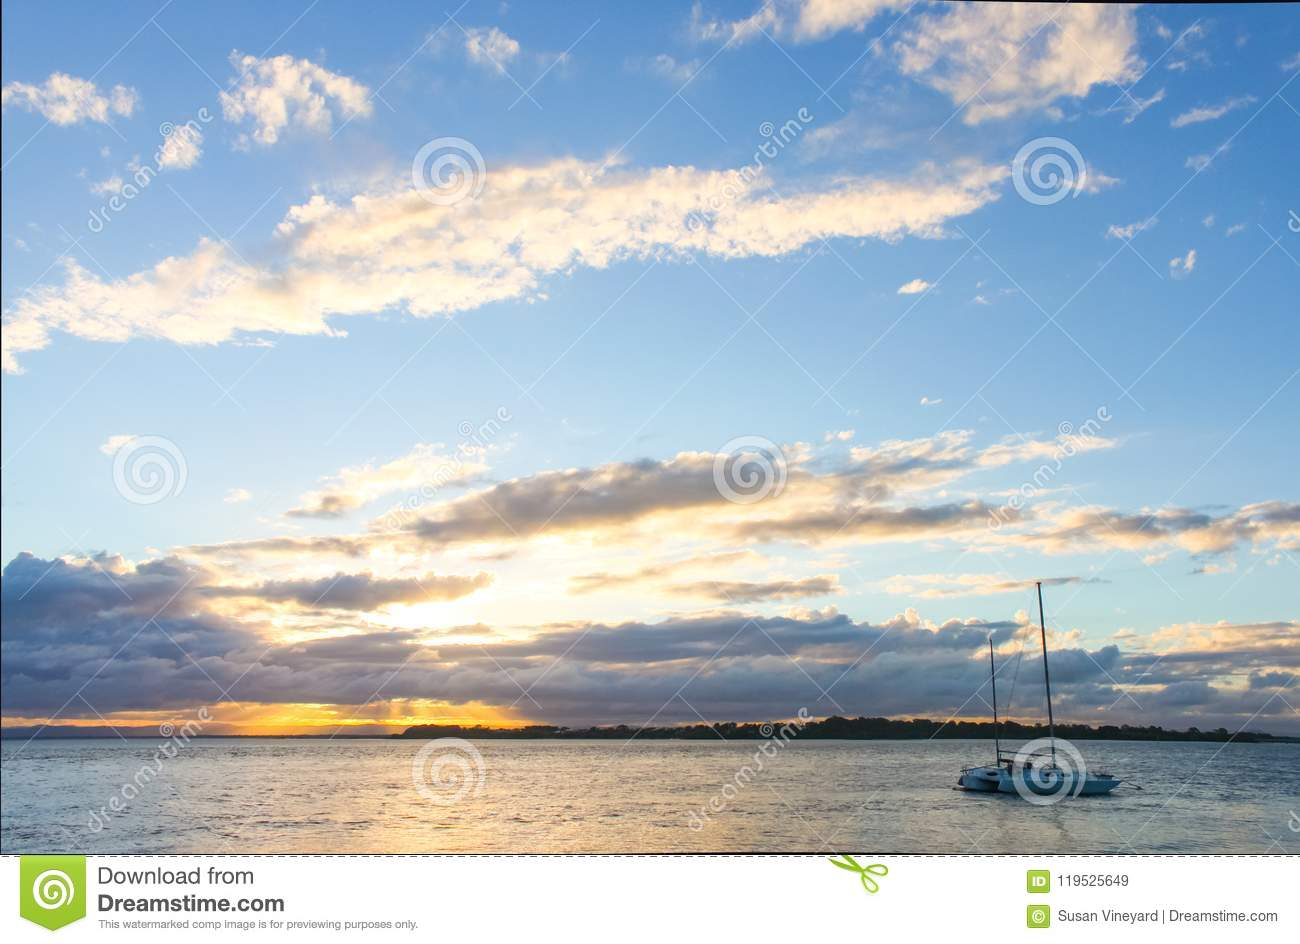 Catamaran sailboat in water at sunset with sun breaking though clouds on horizon